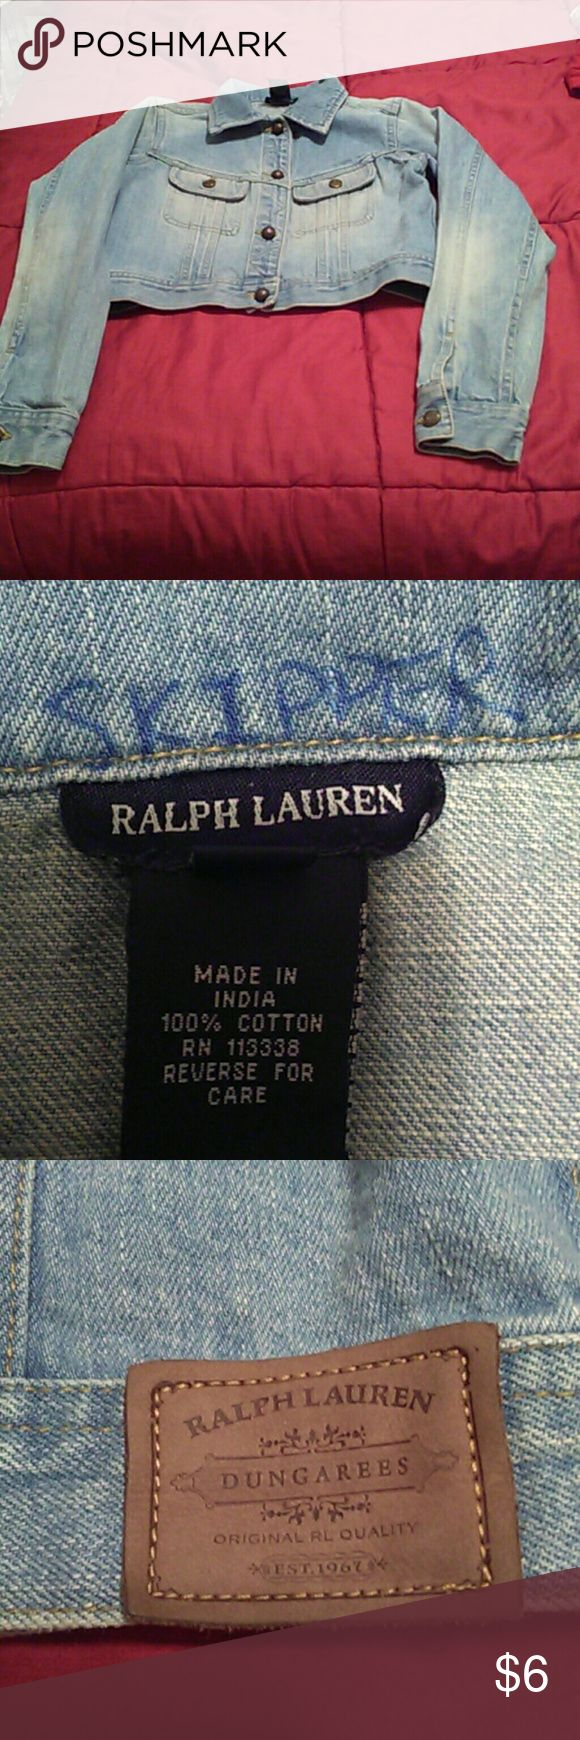 Ralph Lauren Polo Jacket Boys M/ Worn blue denim jacket. If your child is not named Skipper and you care that the previous owner put the name on the inside collar then this jacket is not for you. Price reflects indelible ink (Skipper name). Inventory#0106 Ralph Lauren Jackets & Coats Jean Jackets